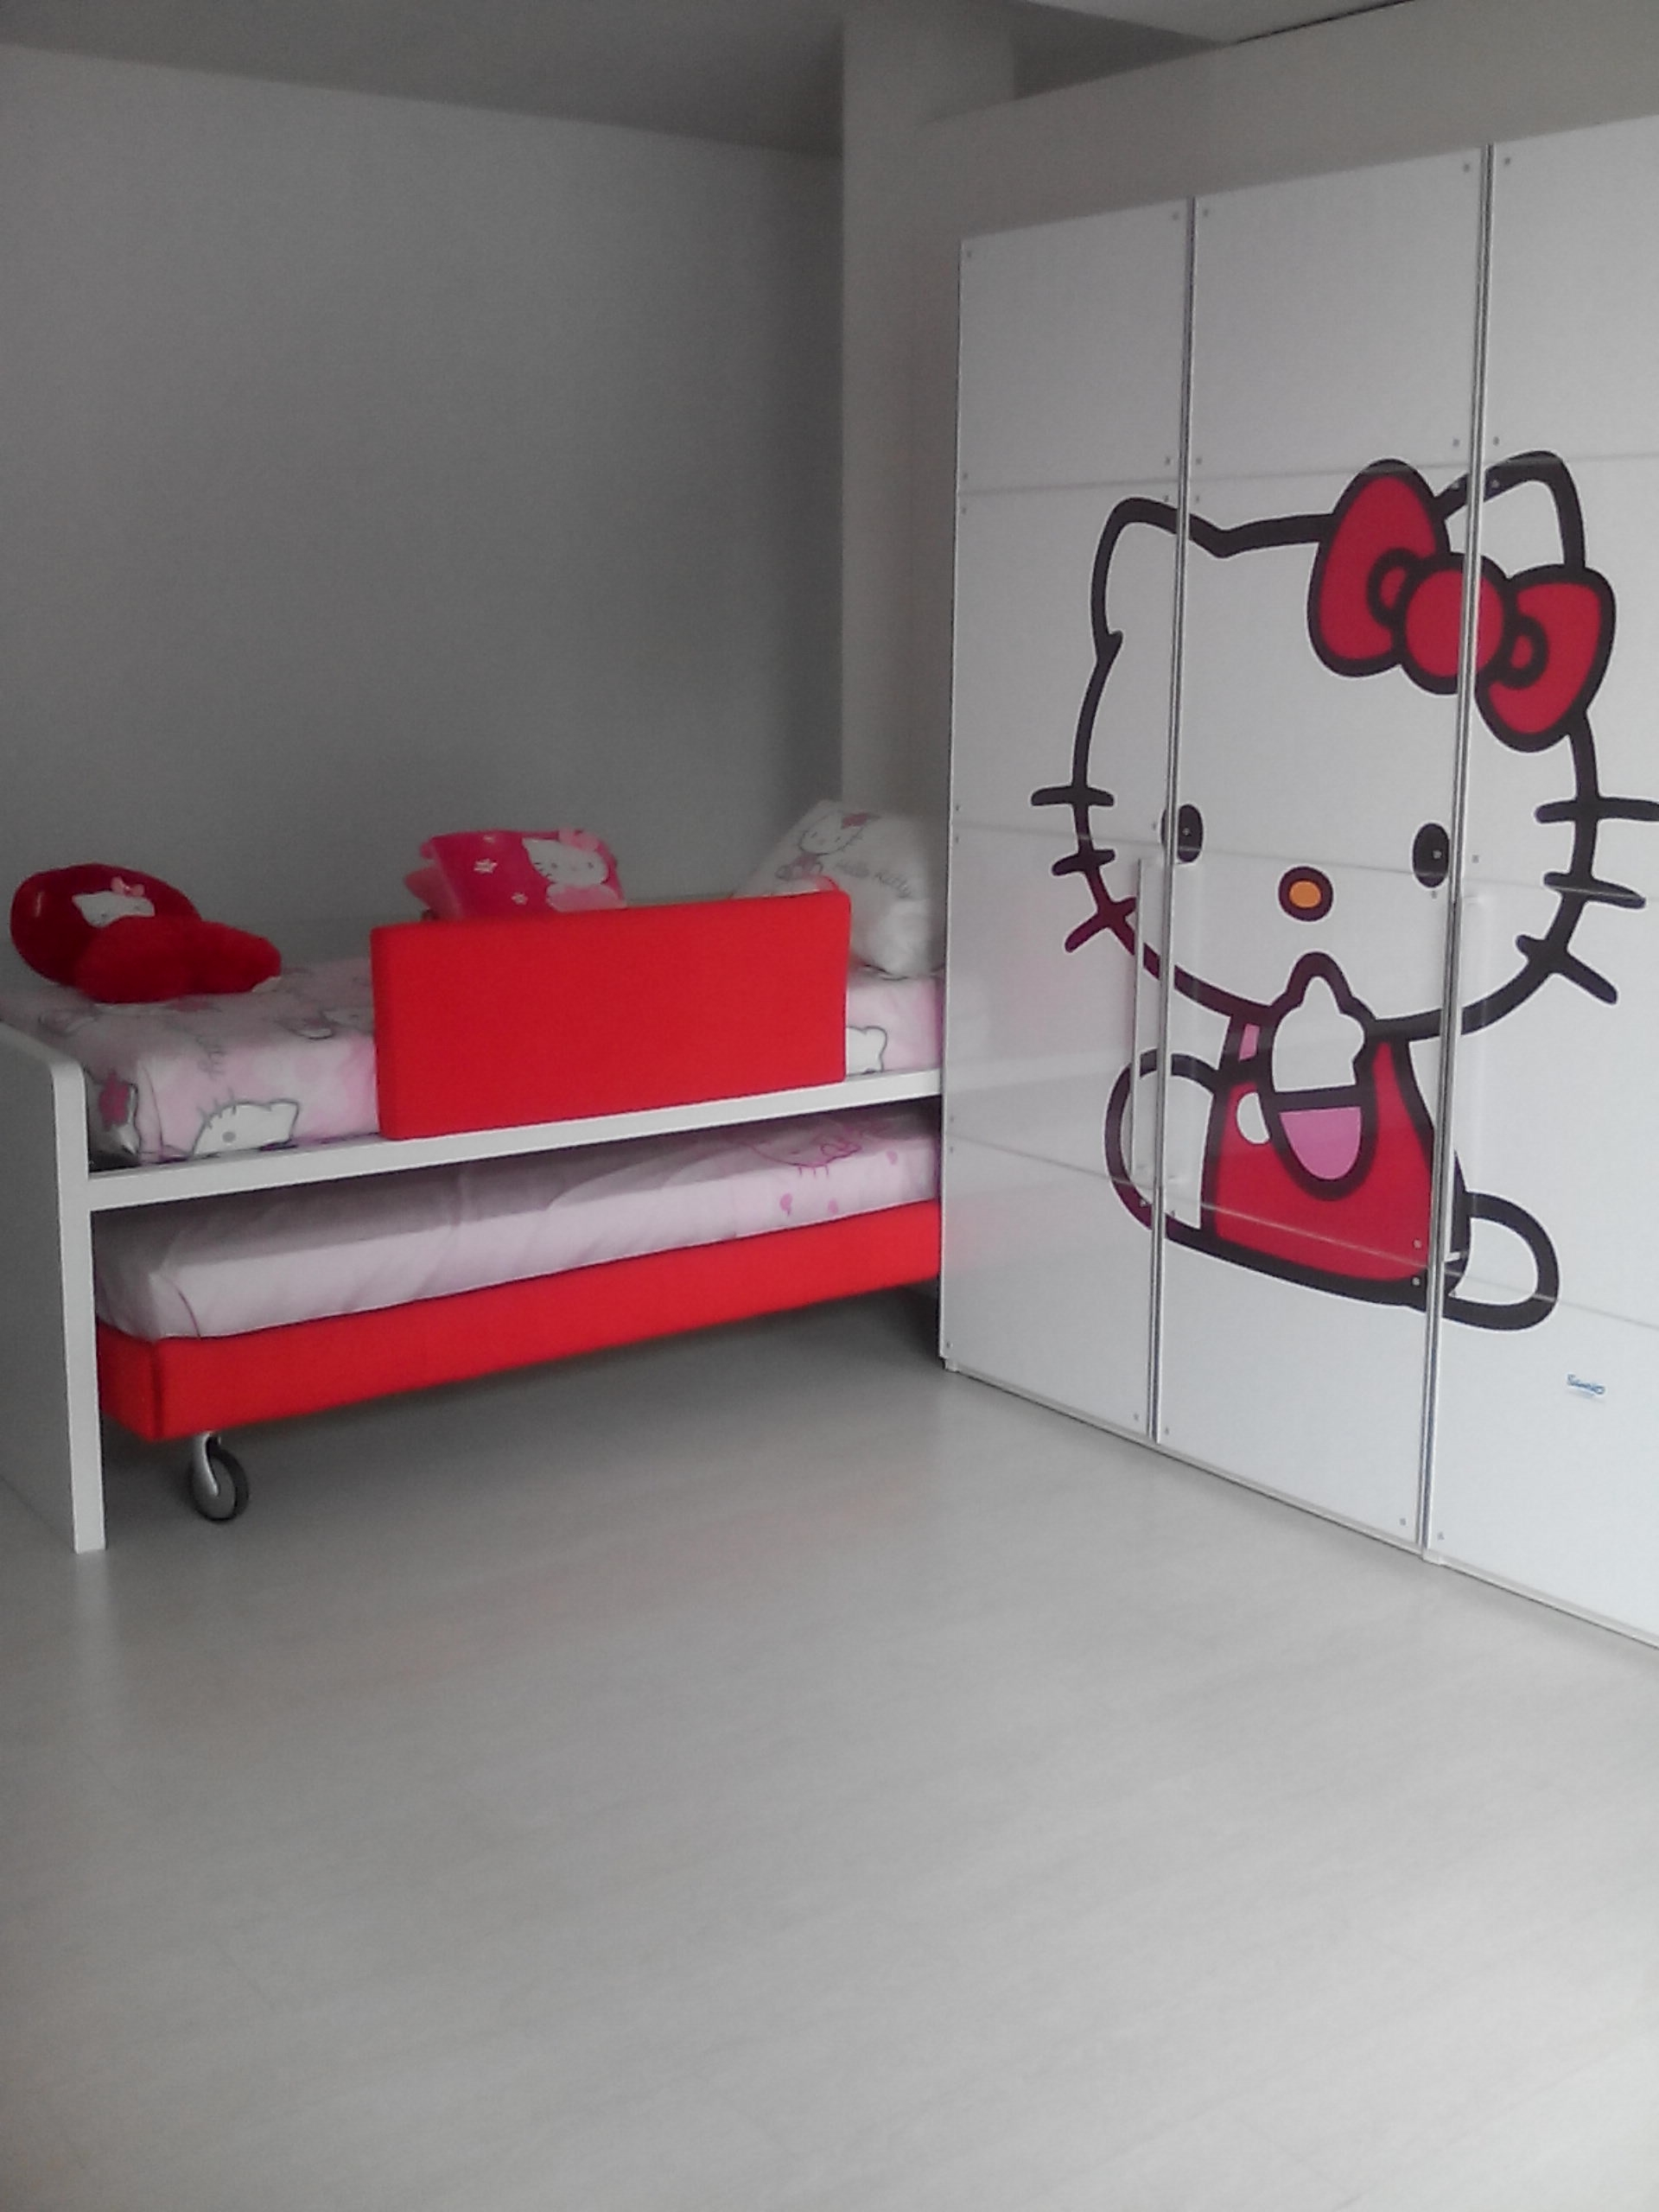 Camerette Di Hello Kitty  hello kitty cameretta kittylove, camera da letto hello kitty camera ...